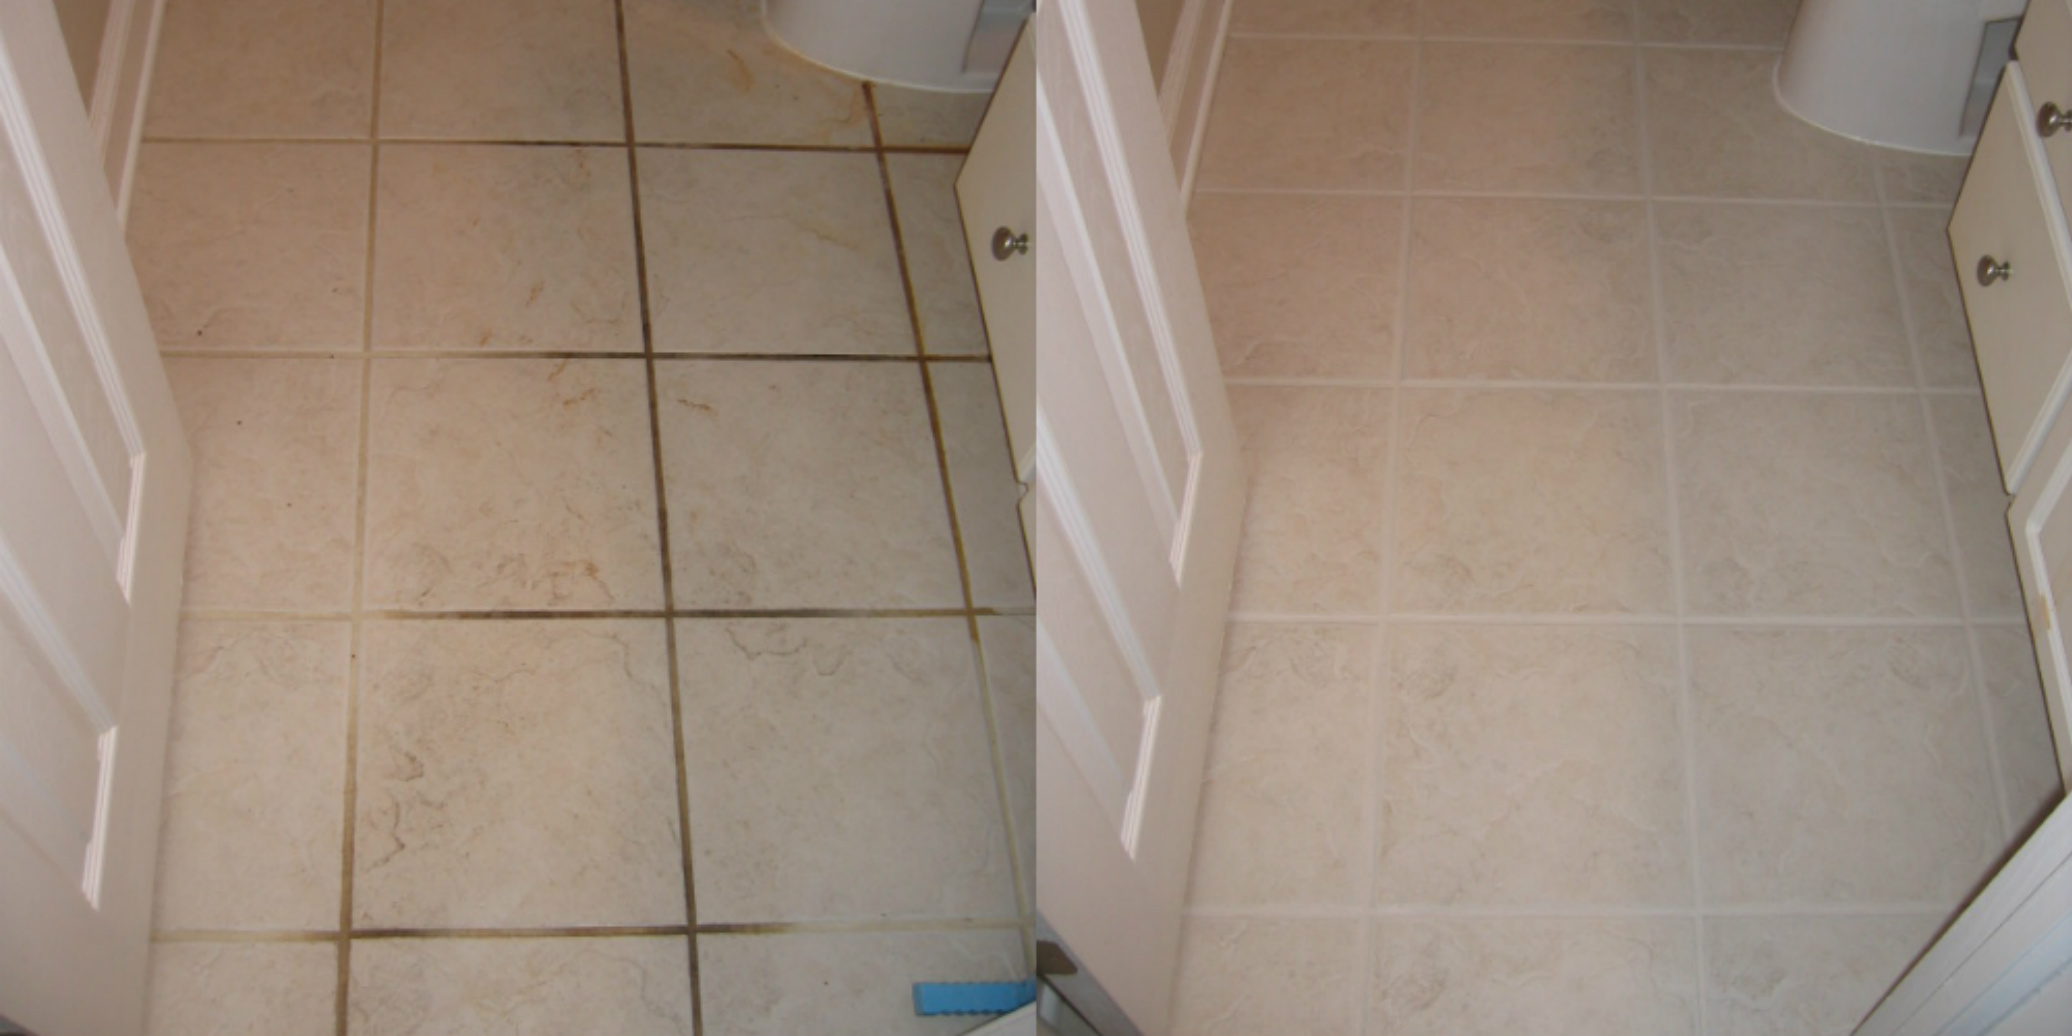 Tile and Grout Cleaning Services Fielder